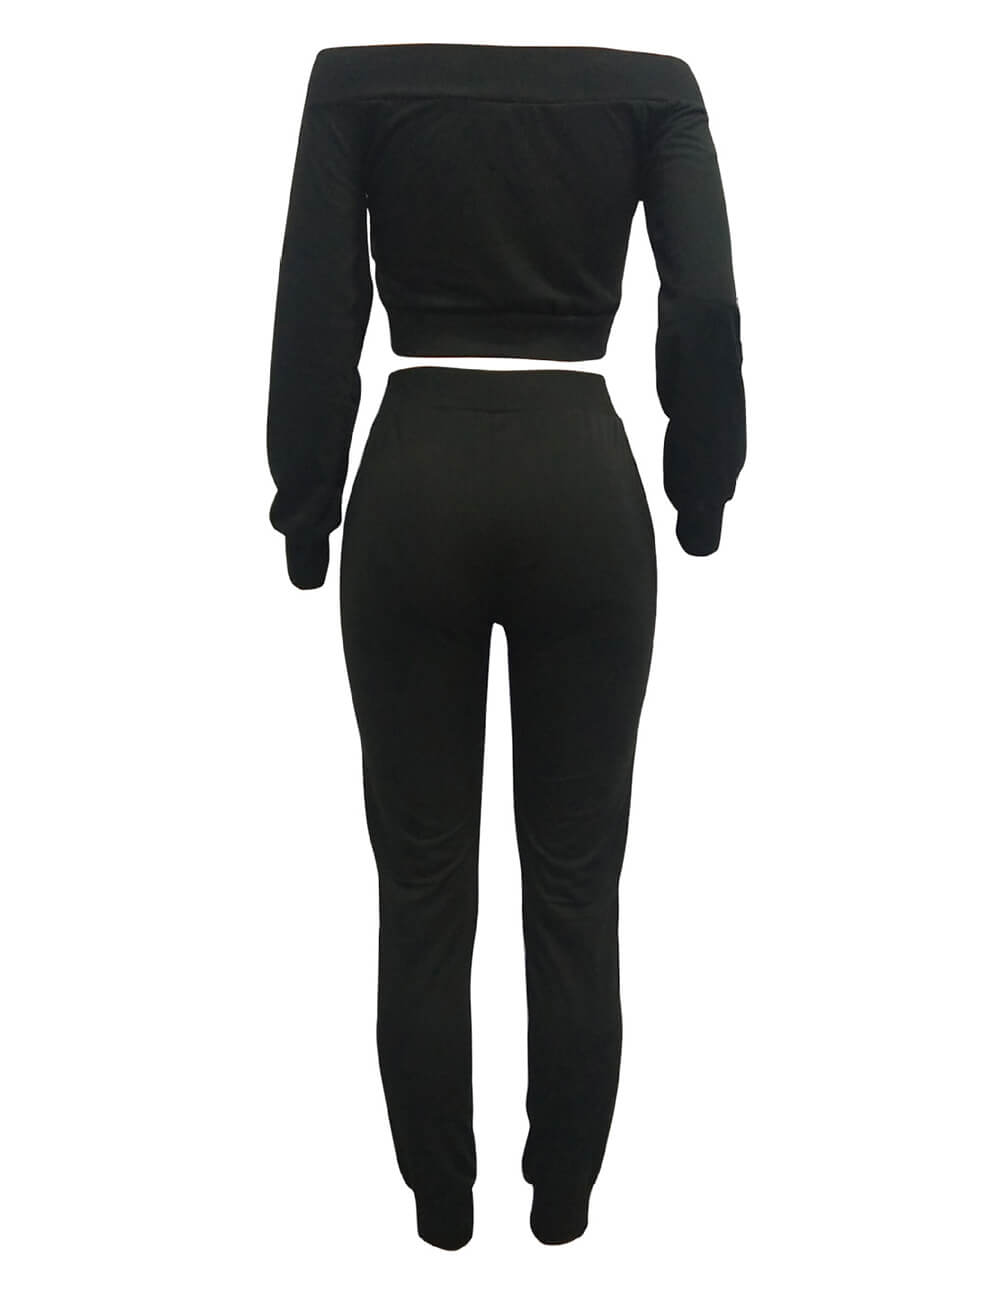 Women's Sexy Spring 2pcs Sports Sweatsuits Off Shoulder Lace-Up Tracksuit Jumper Sets Legging Jogger